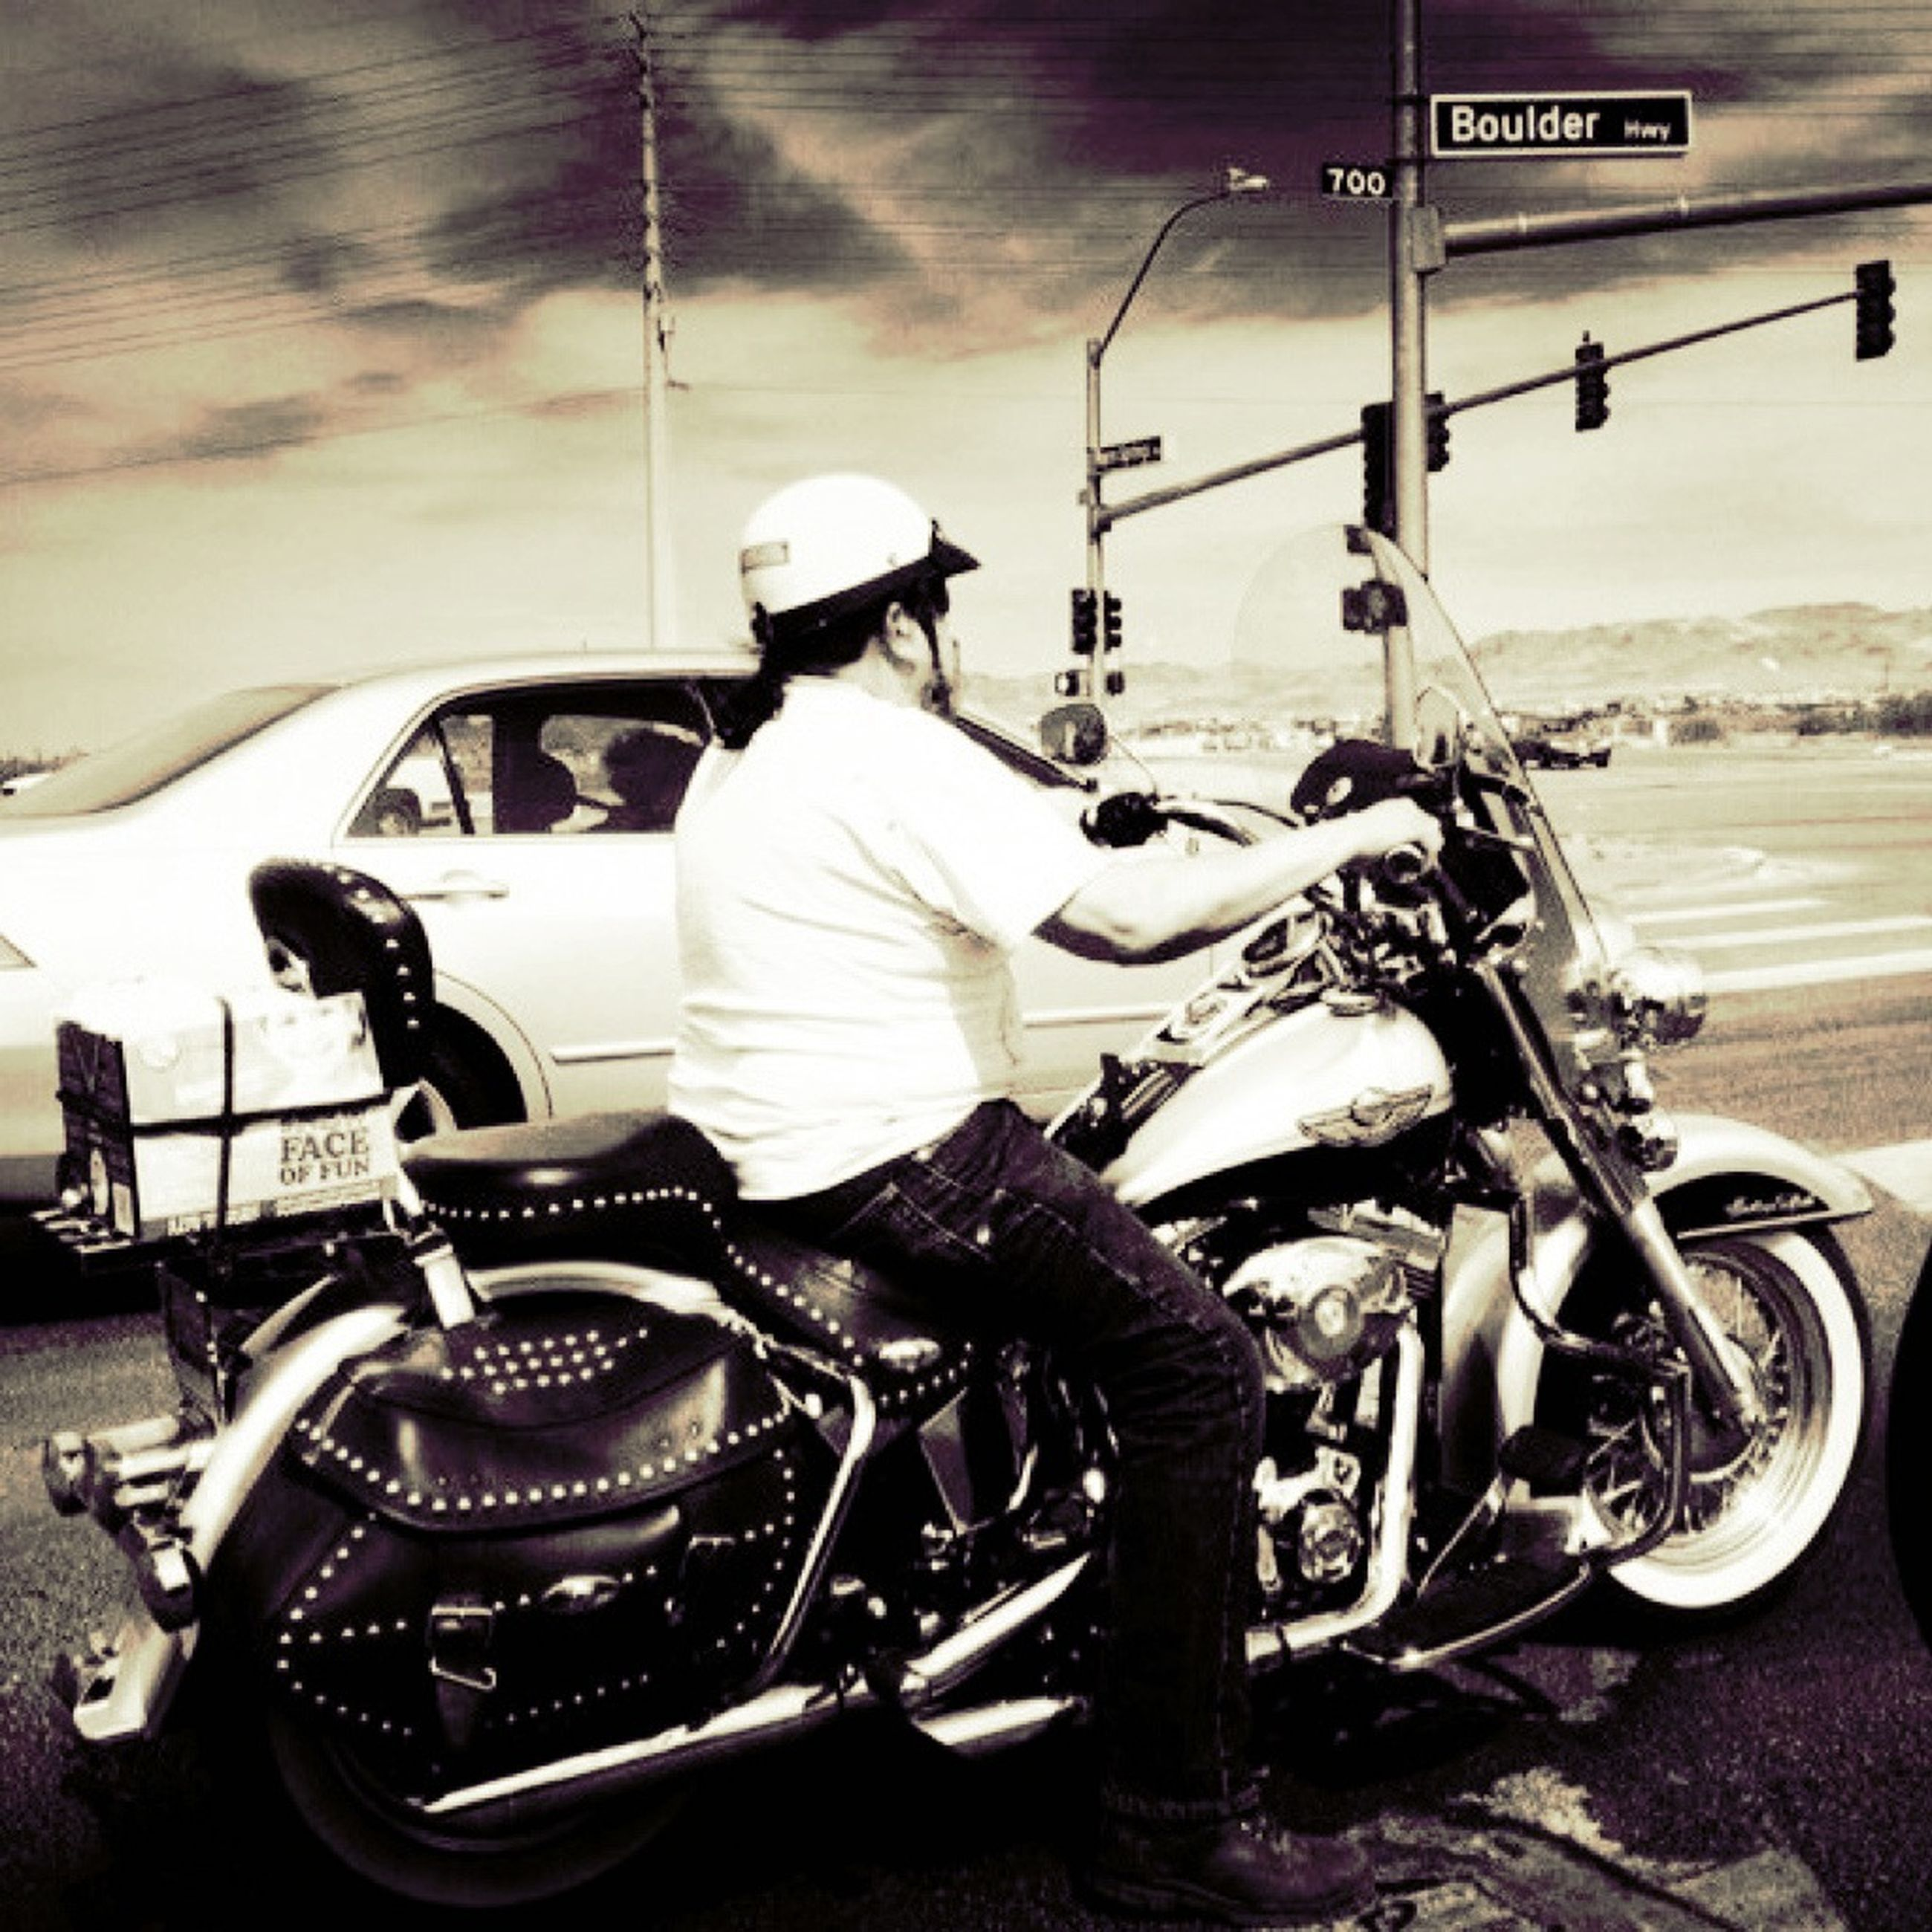 transportation, mode of transport, land vehicle, bicycle, stationary, parking, car, parked, street, travel, road, parking lot, outdoors, day, motorcycle, weather, no people, pole, winter, on the move